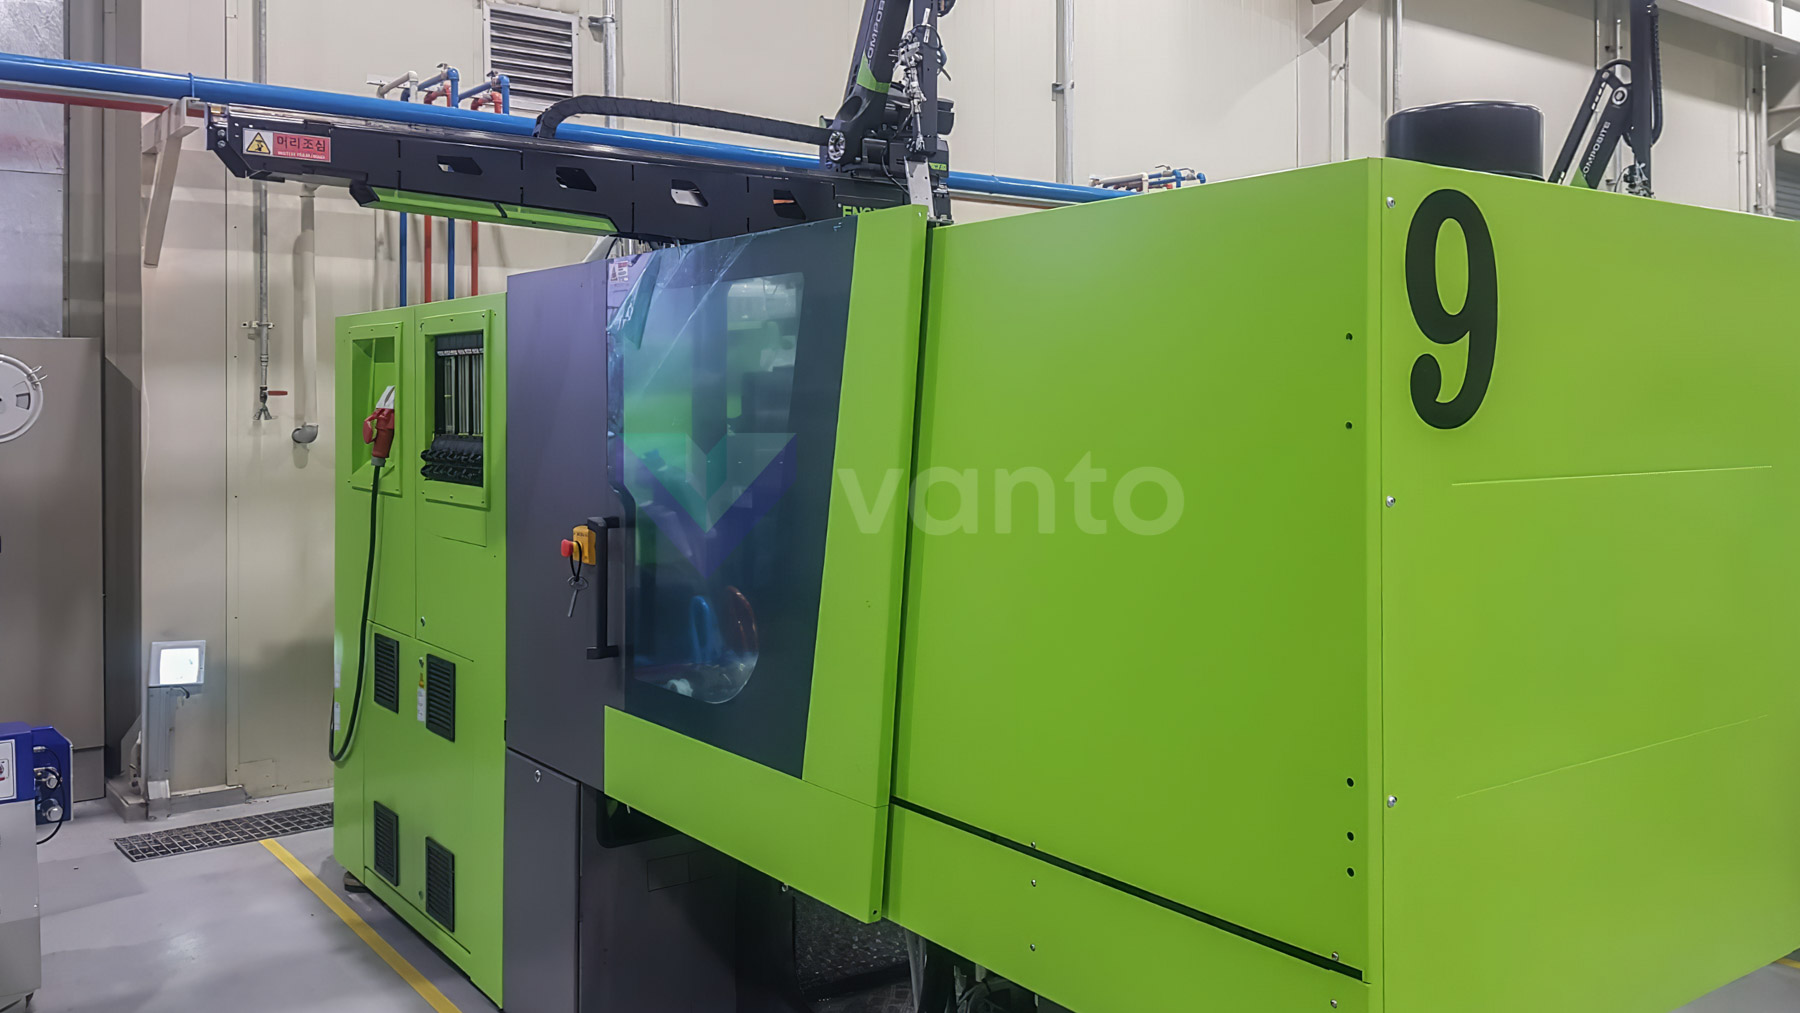 ENGEL VICTORY VC 60 / 50 TECH PRO 50t injection molding machine (2019) id10412